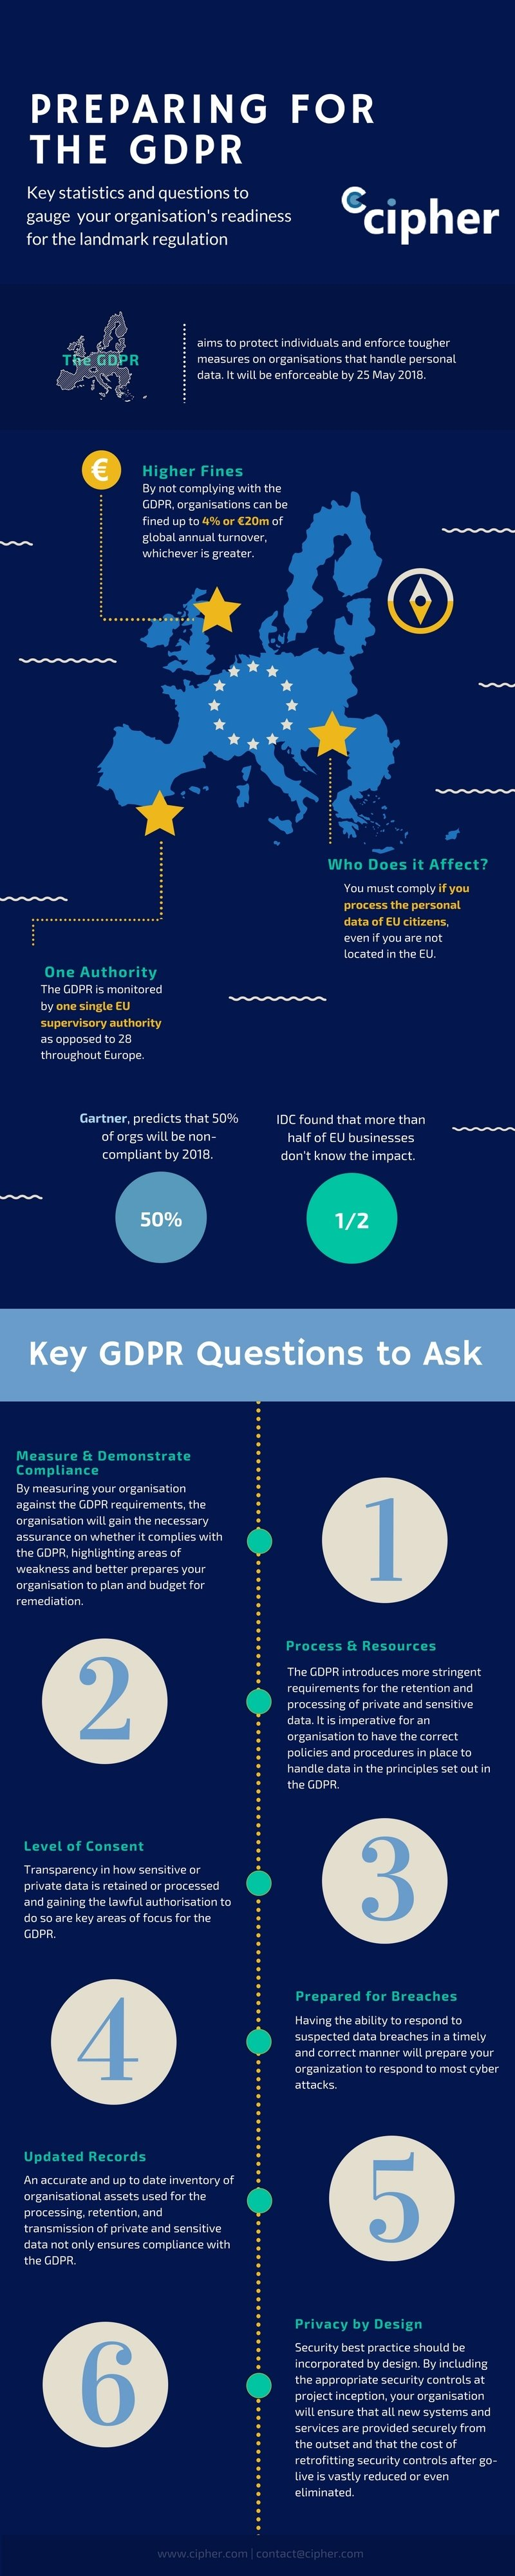 How to Prepare for the GDPR Infographic.jpg